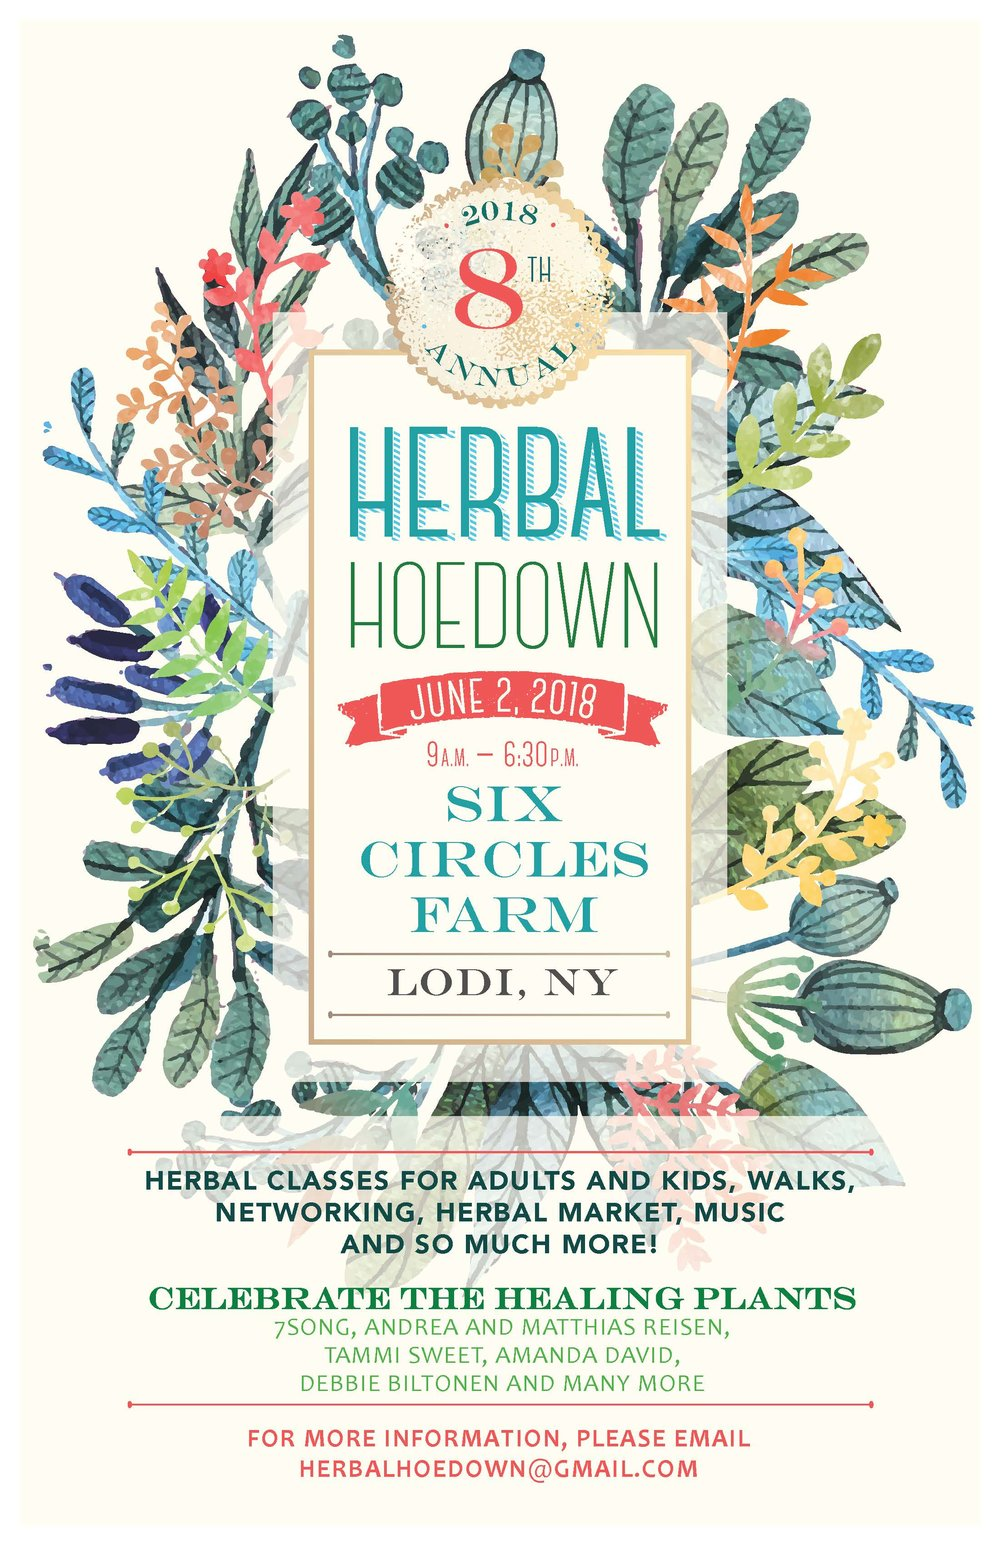 Join us June 2nd! - We'll be teaching a workshop entitled, INVASIVES : Plants, Boundaries and MedicineFor the full lineup and all the details on this great one day Herbal event, visit https://m.facebook.com/events/1987189561609025and to register for the day, visit https://docs.google.com/forms/d/e/1FAIpQLSfX_ADx86kfEGRMYNktjhOGDVvHwYHfpTSURCowgZ-uOywdKA/viewform